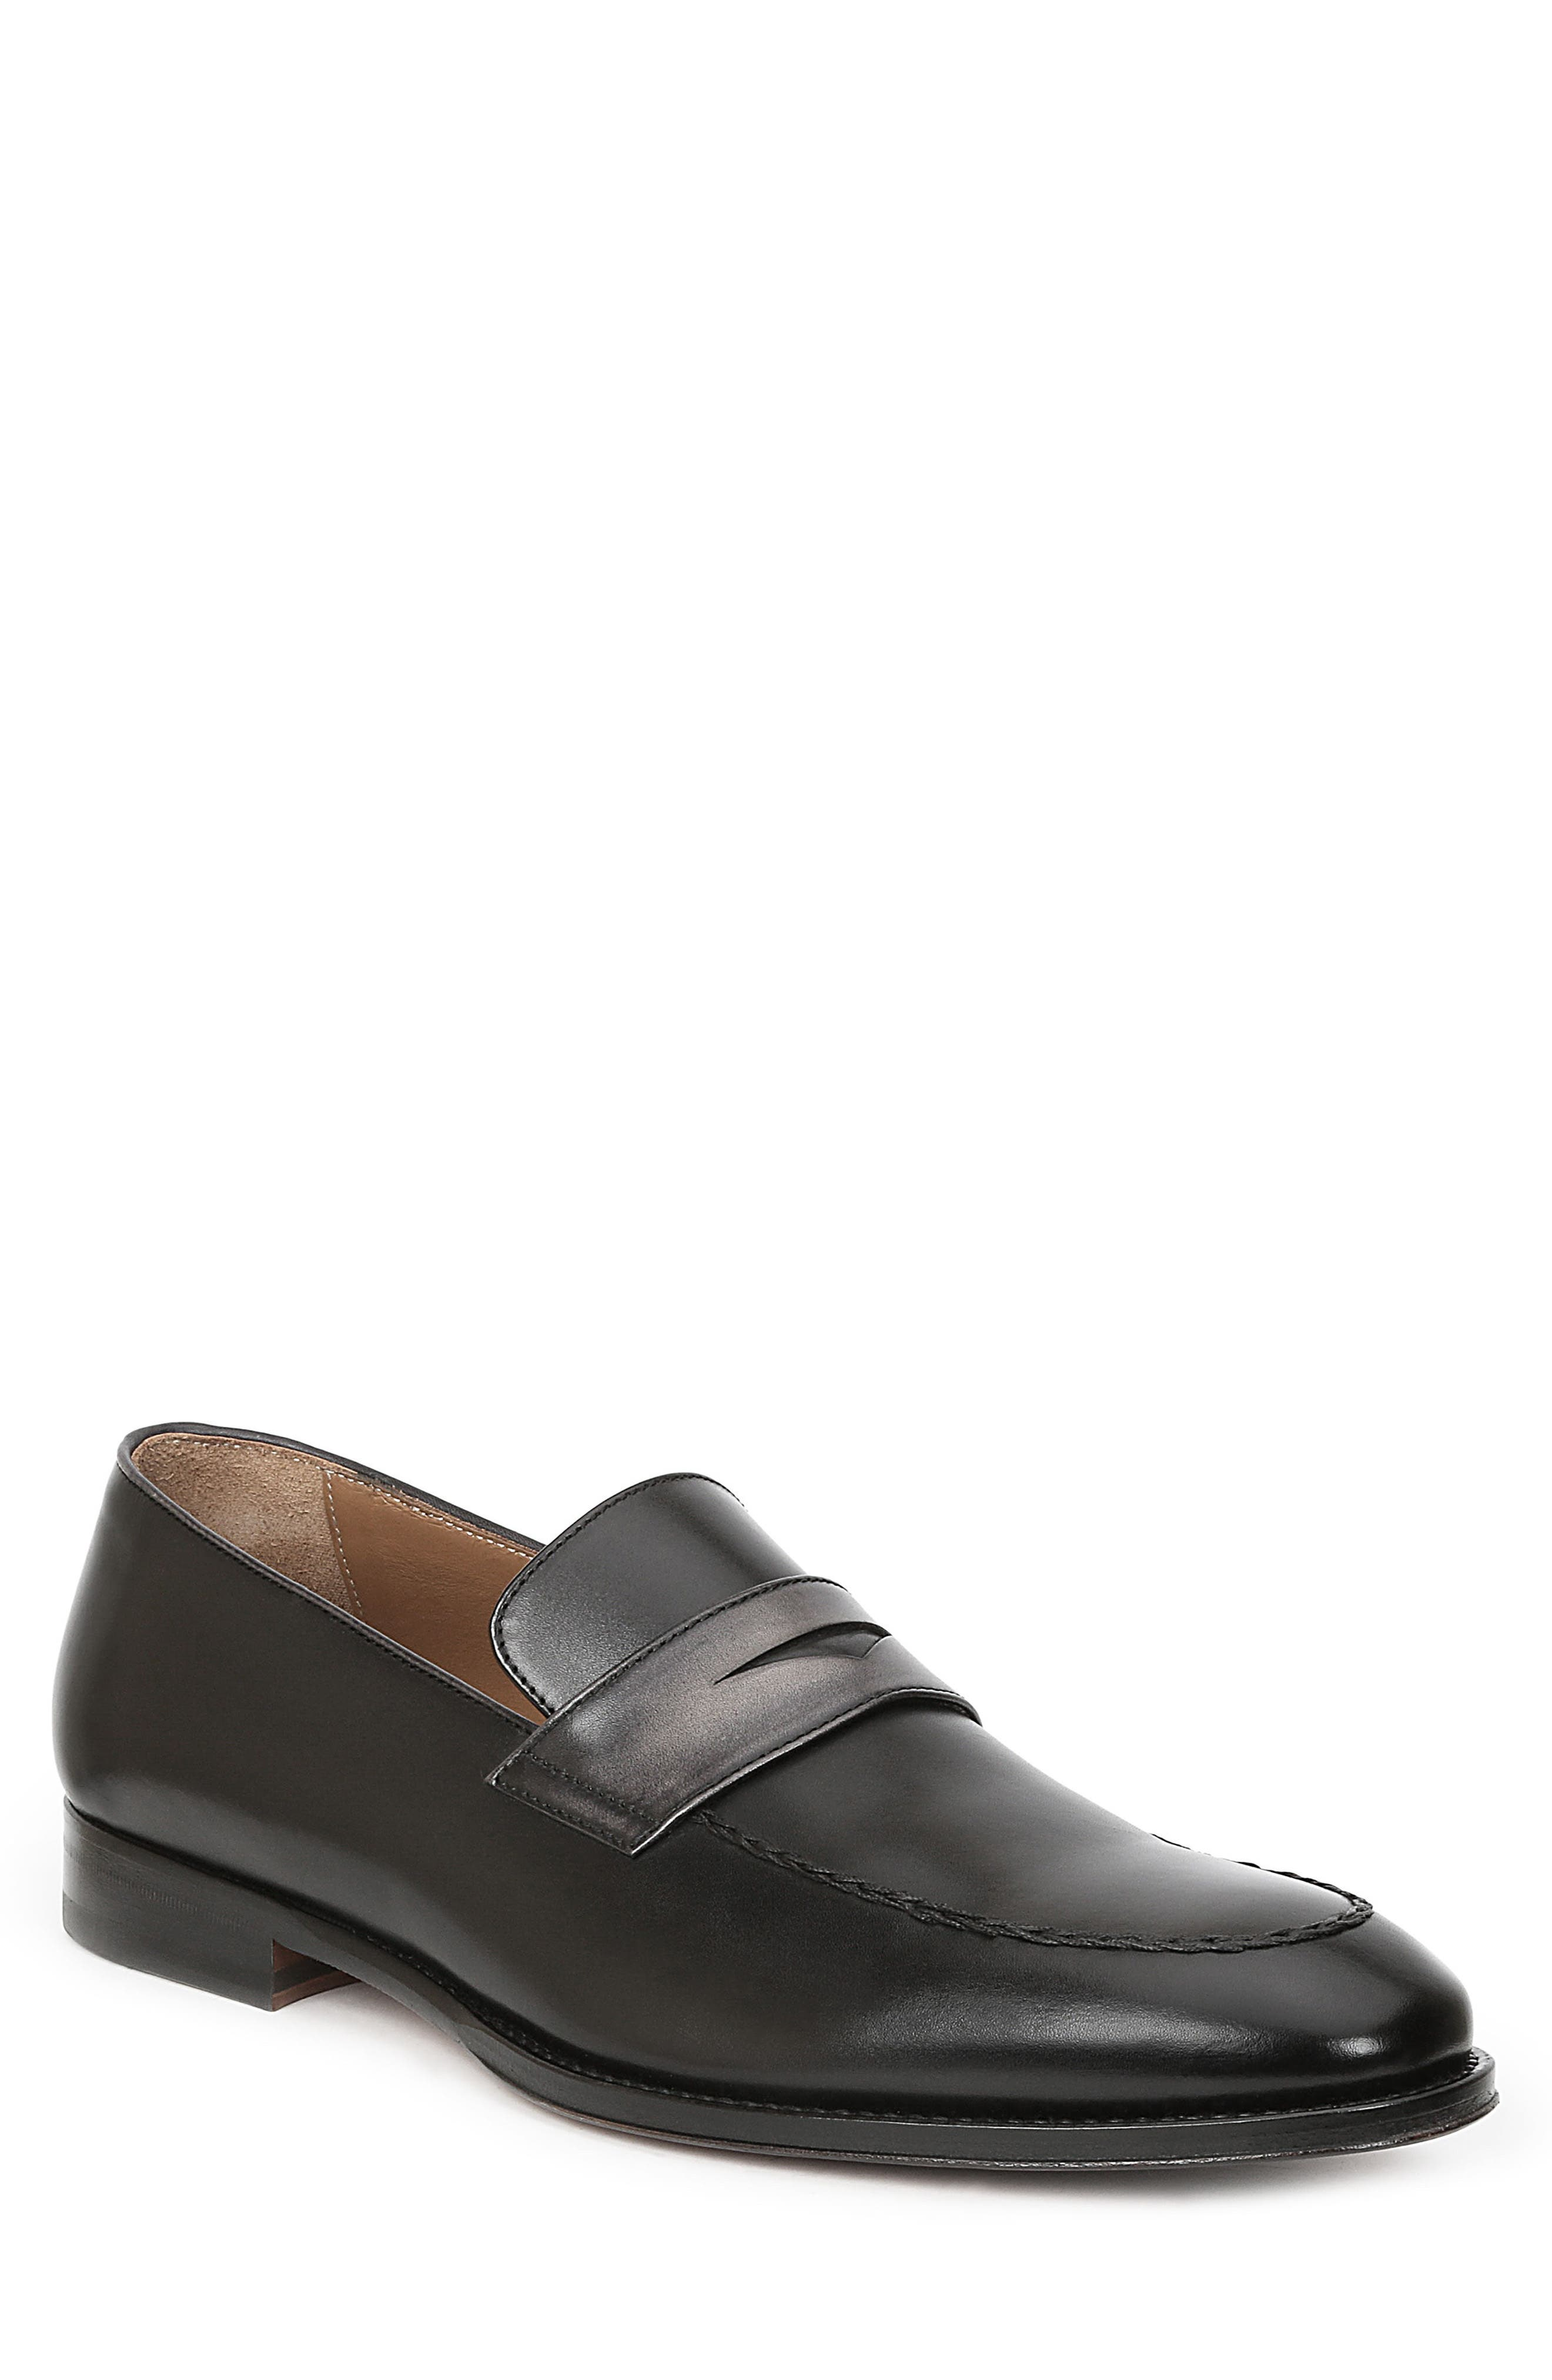 Alternate Image 1 Selected - Bruno Magli Fanetta Penny Loafer (Men)